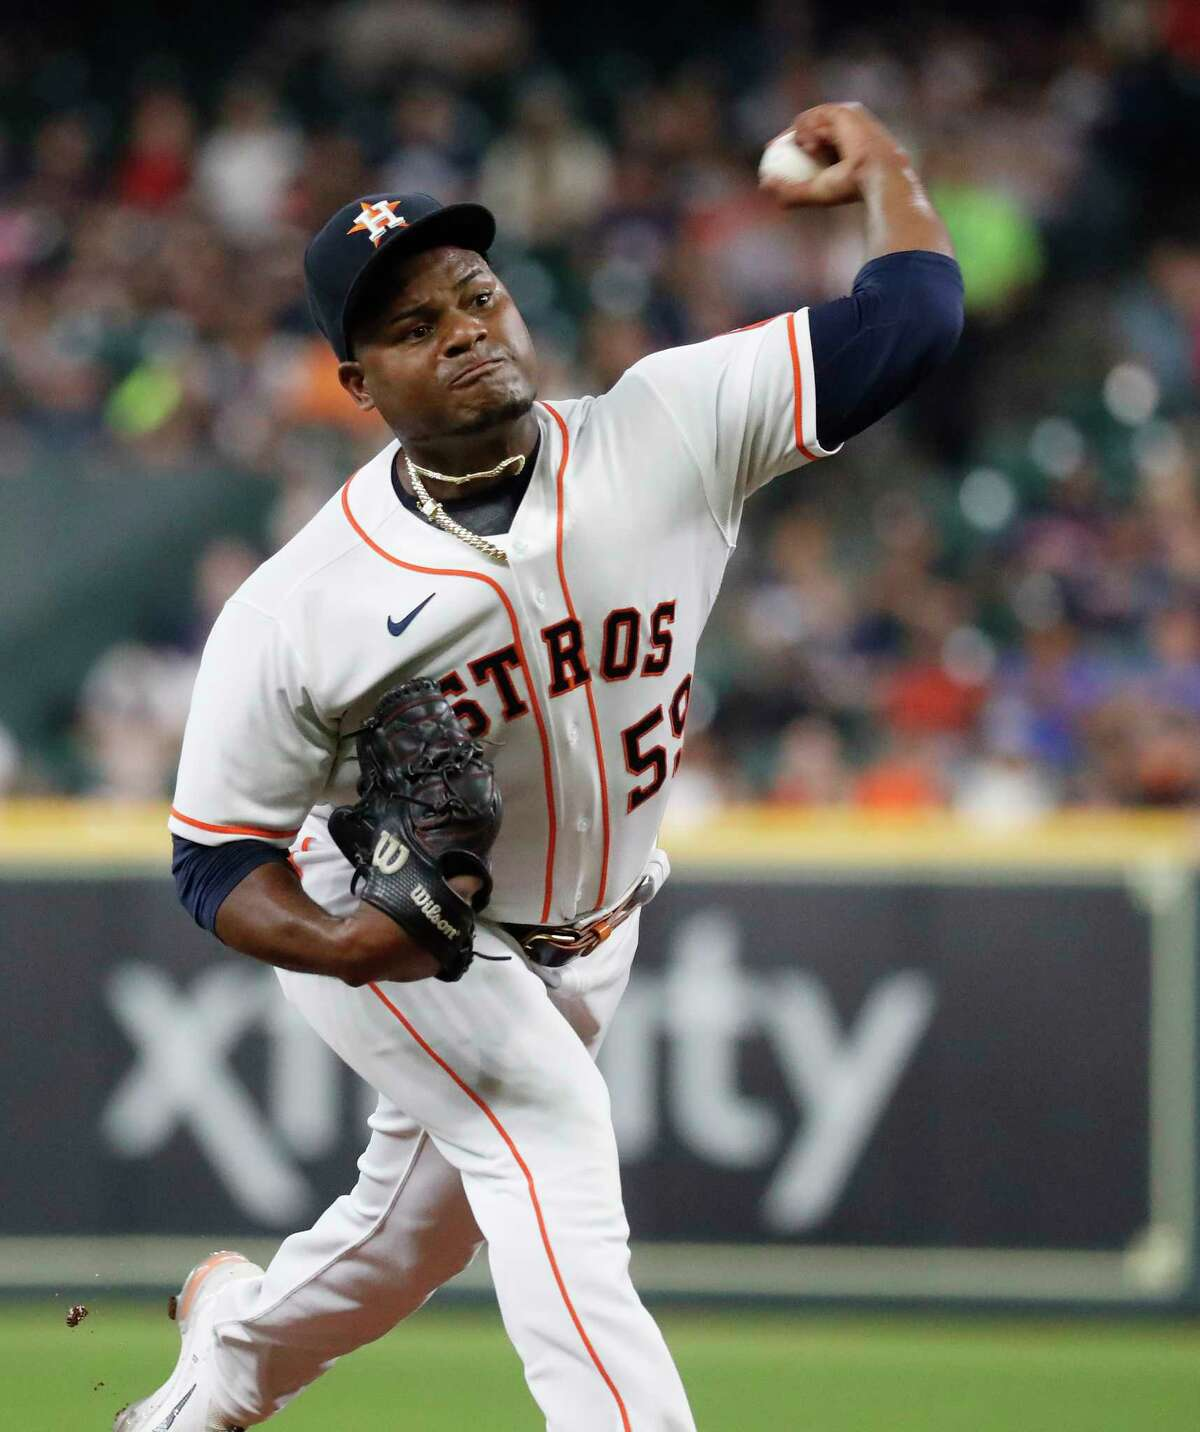 Houston Astros starting pitcher Framber Valdez (59) pitches during the first inning of an MLB baseball game at Minute Maid Park, Thursday, August 5, 2021, in Houston.